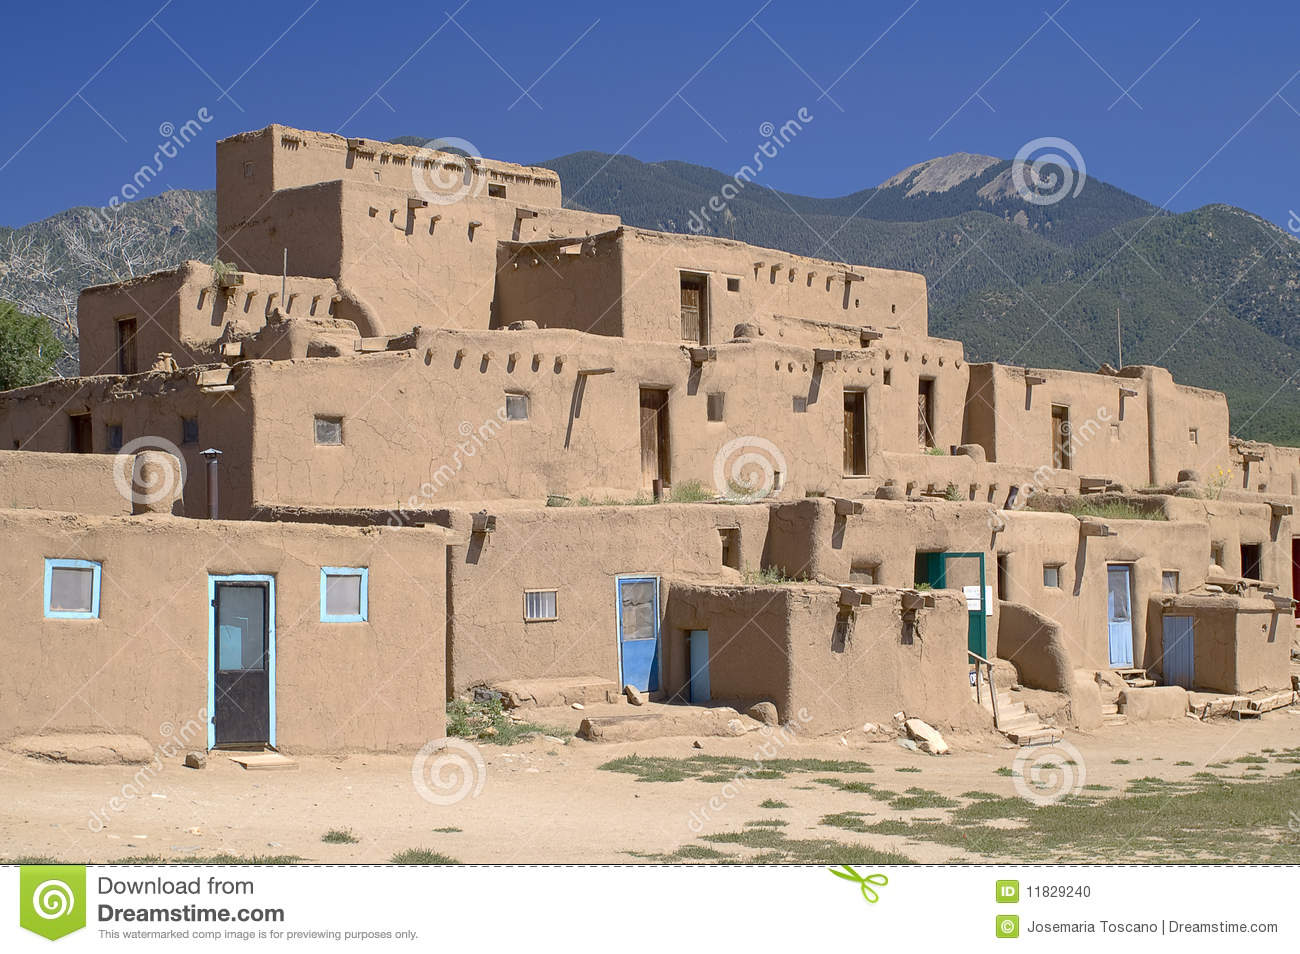 Adobe houses in the pueblo of taos stock photo image 11829240 - Pueblo adobe houses property ...